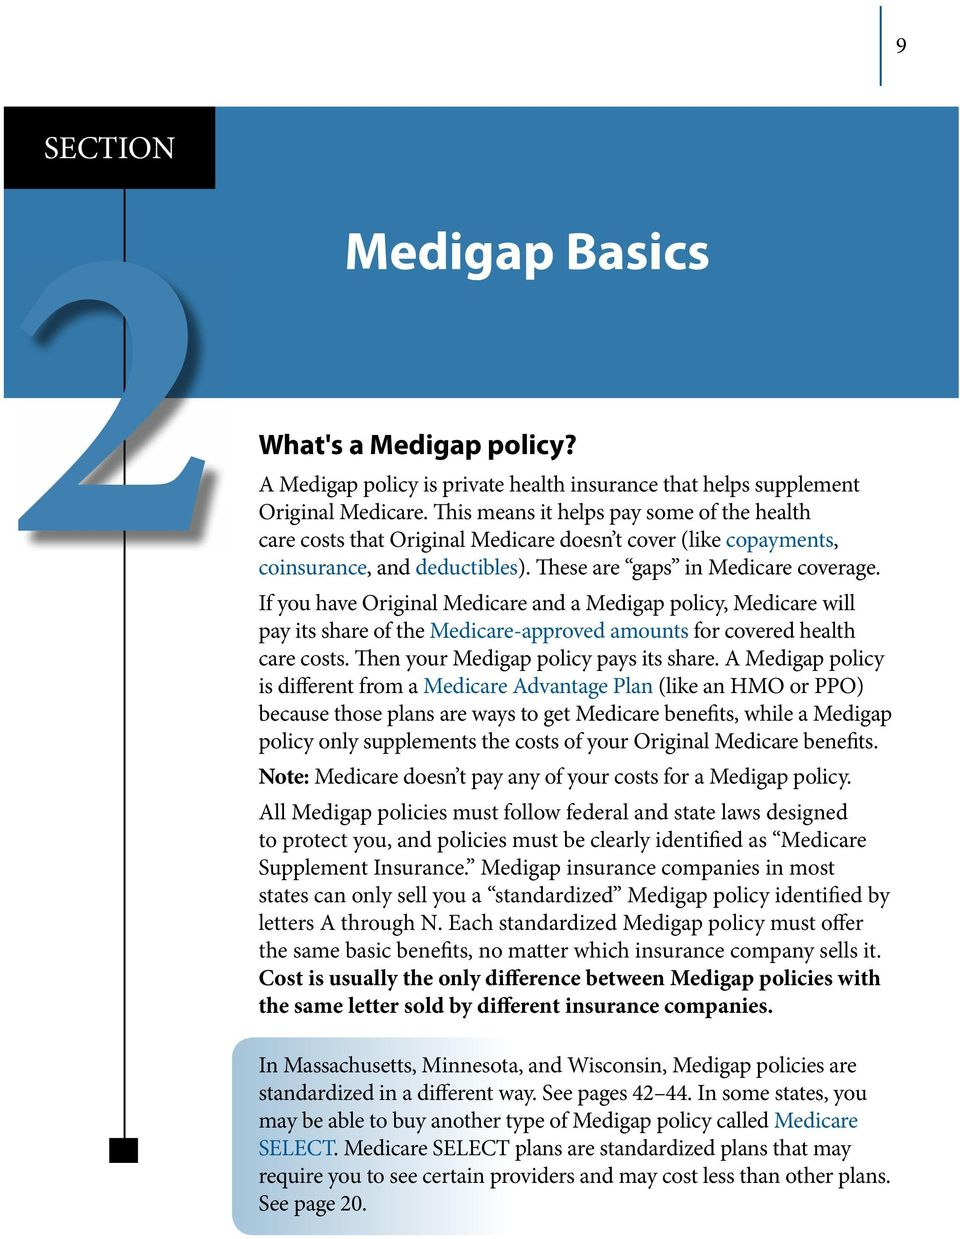 If you have Original Medicare and a Medigap policy, Medicare will pay its share of the Medicare-approved amounts for covered health care costs. Then your Medigap policy pays its share.